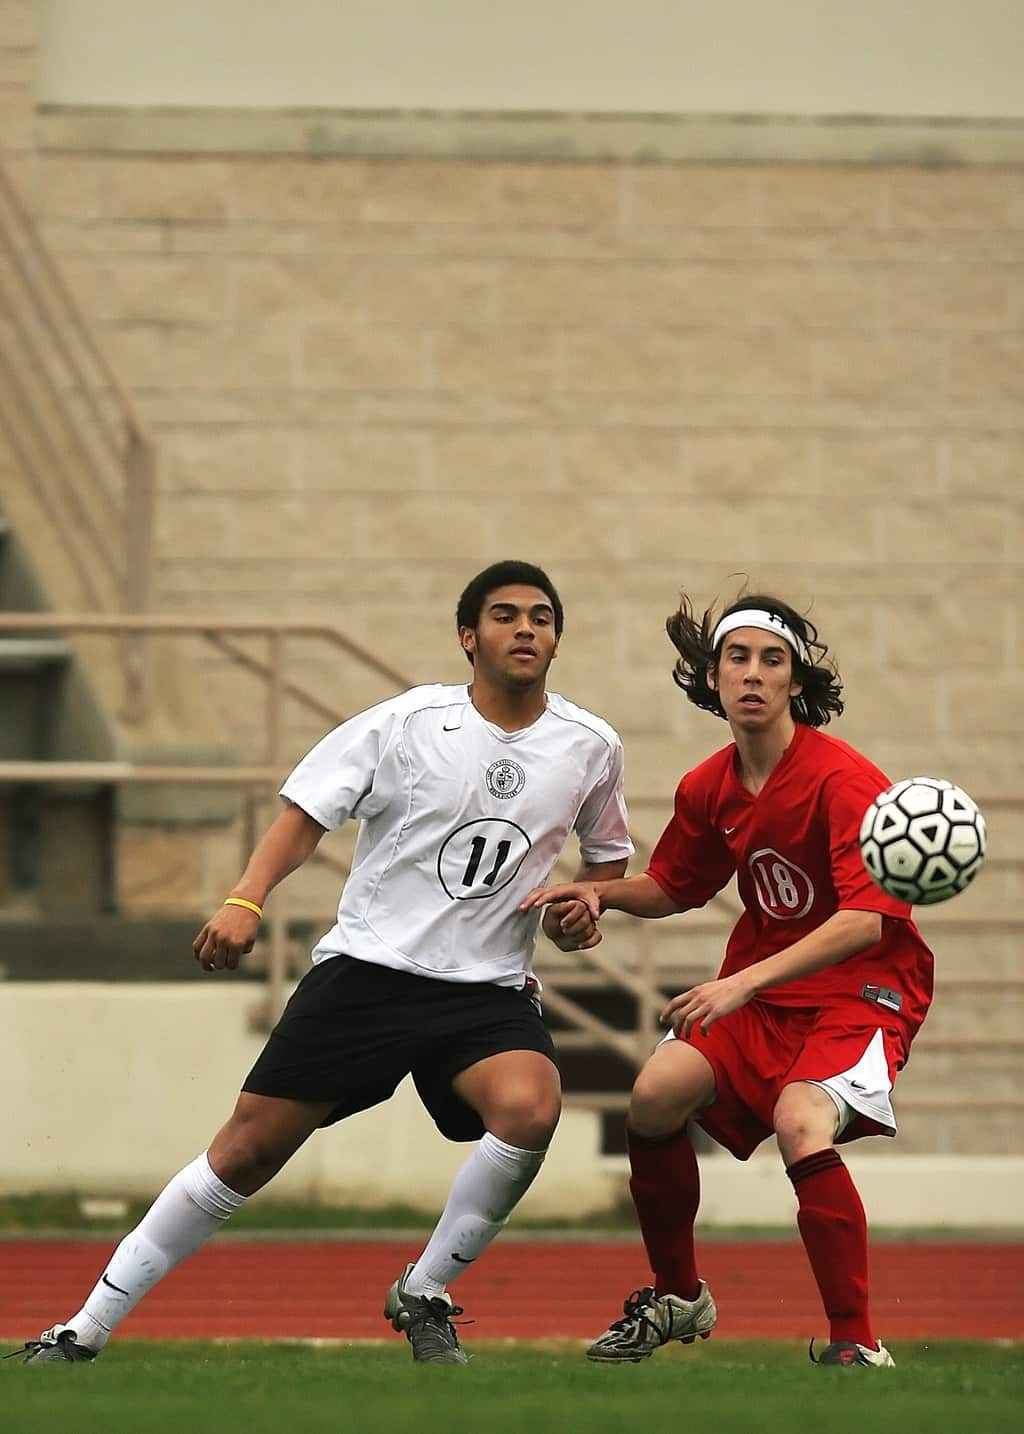 Two soccer athletes vying for the ball